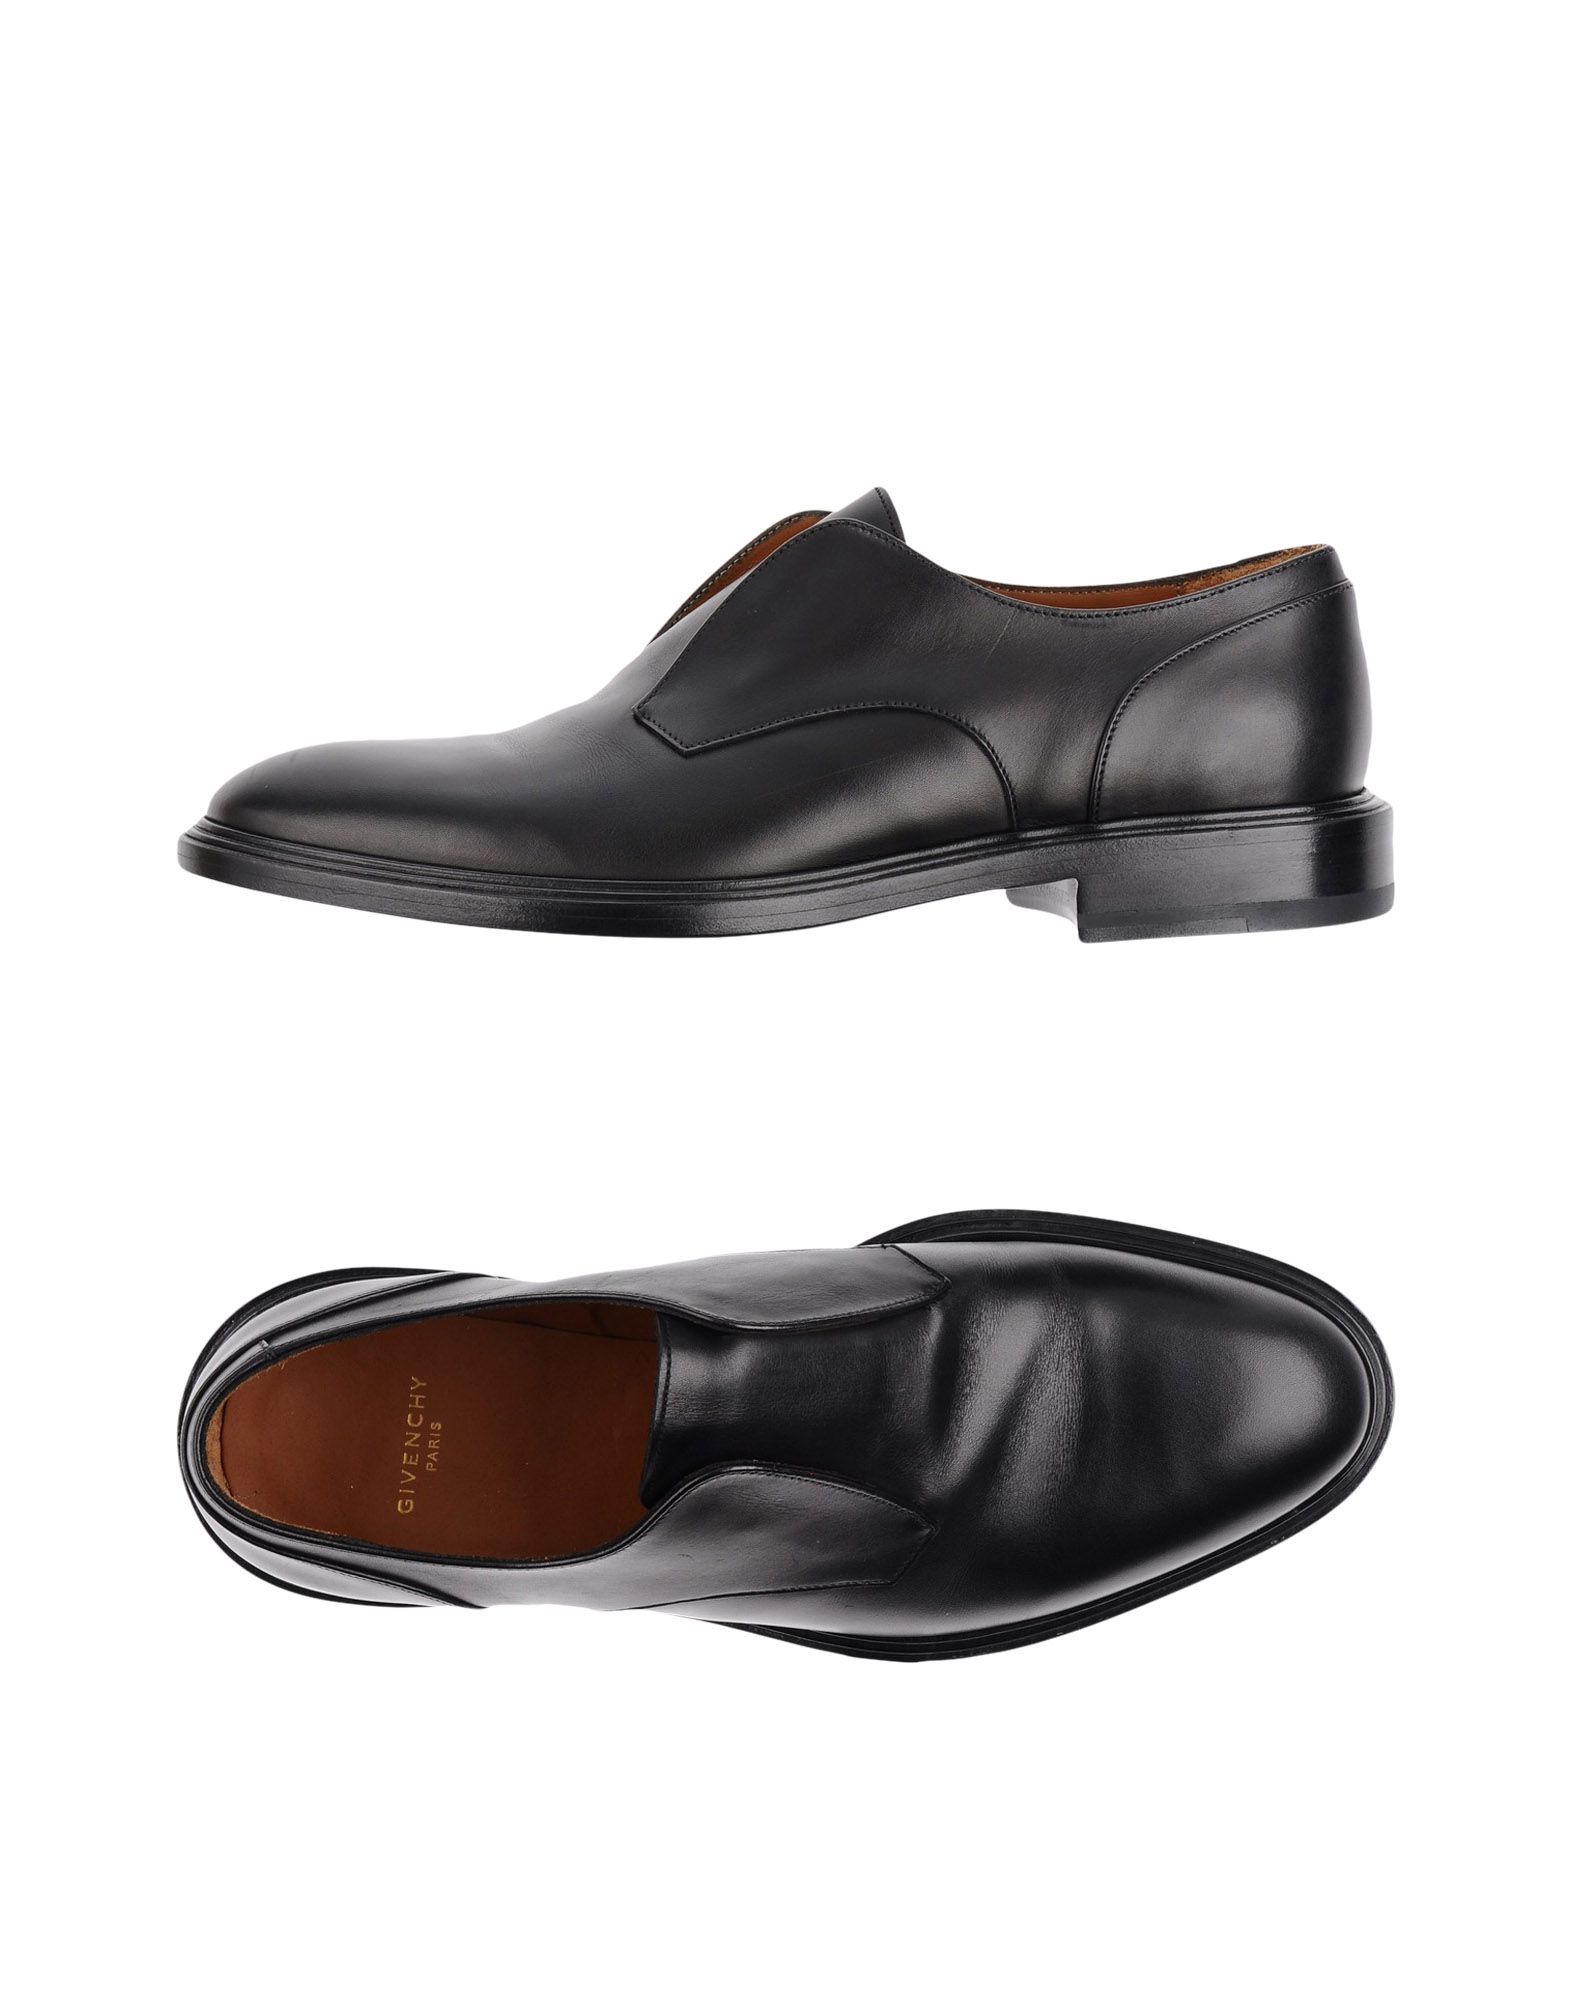 Mocassino Givenchy Uomo - Acquista online su